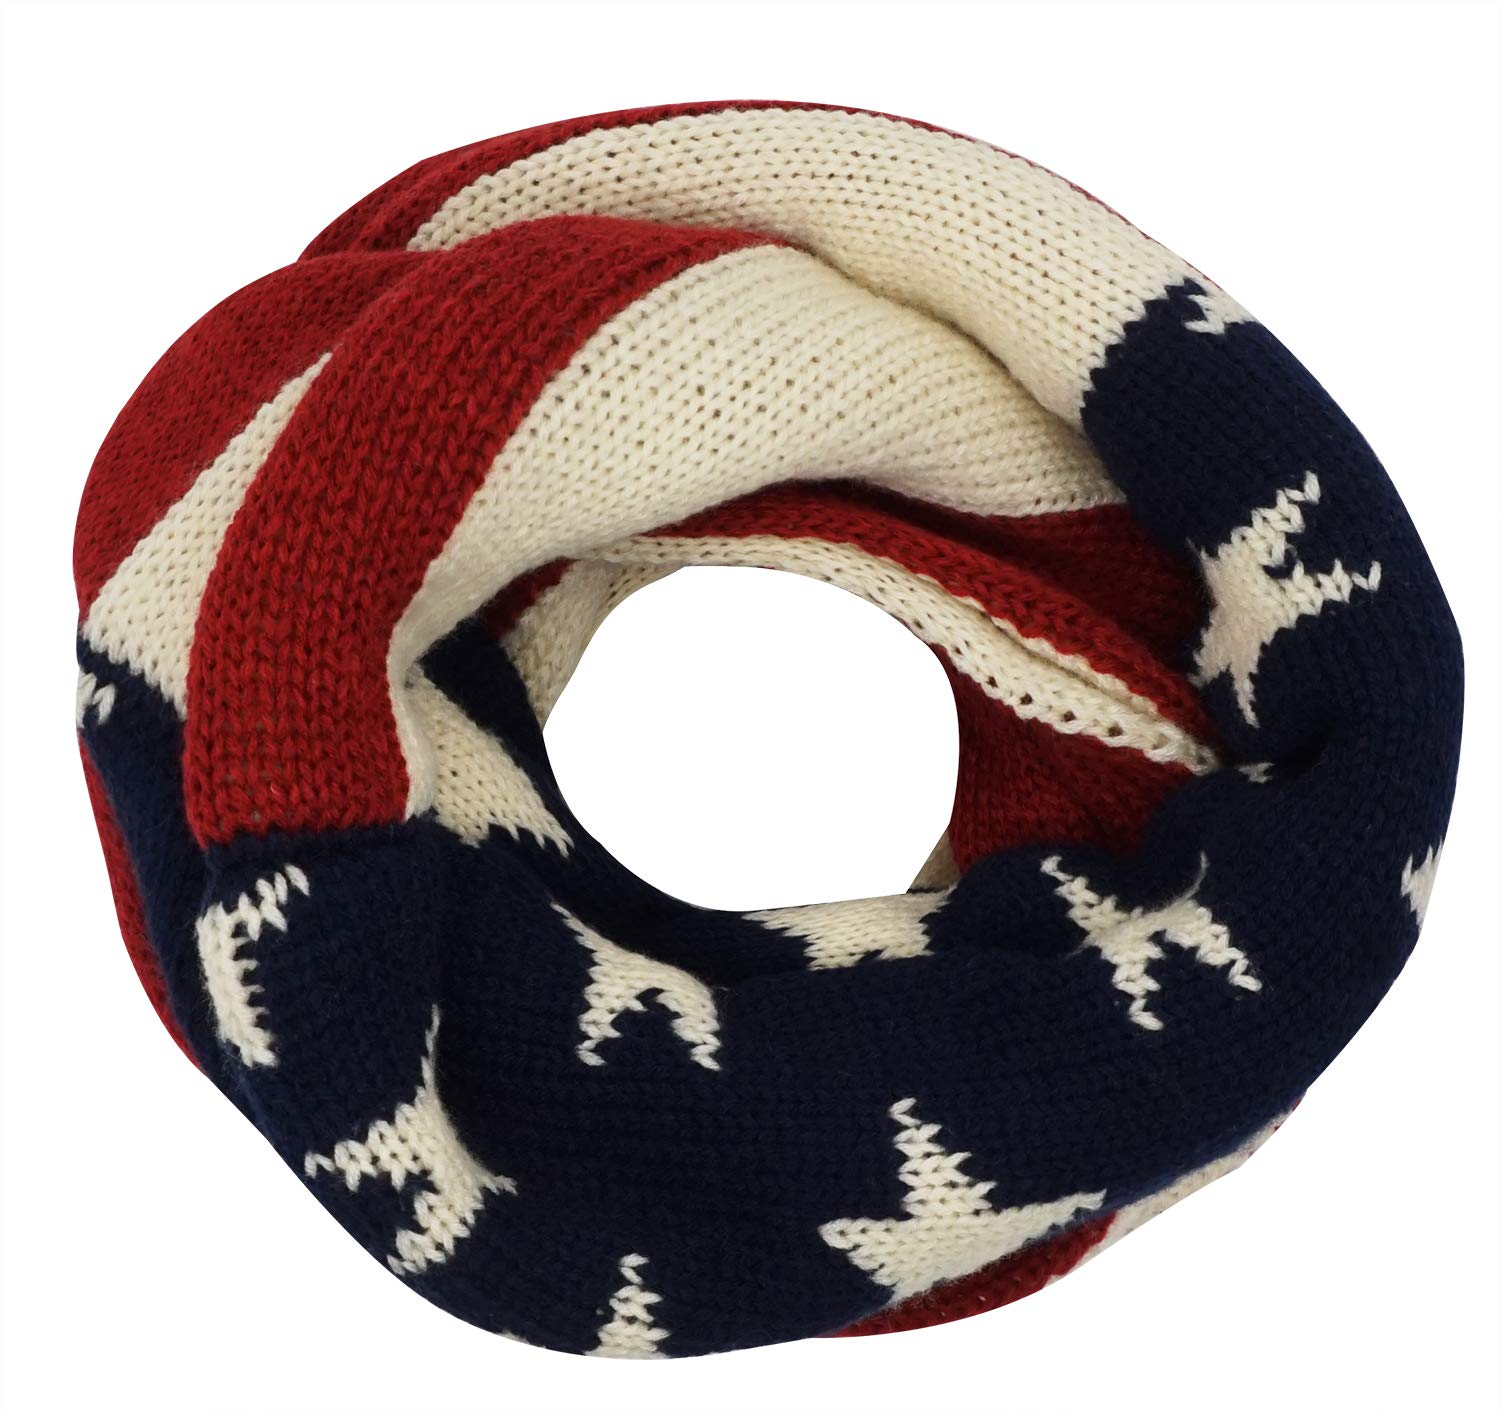 Unisex Thick Warm US American Flag Winter Knit Infinity Circle Scarf ZXG00002141